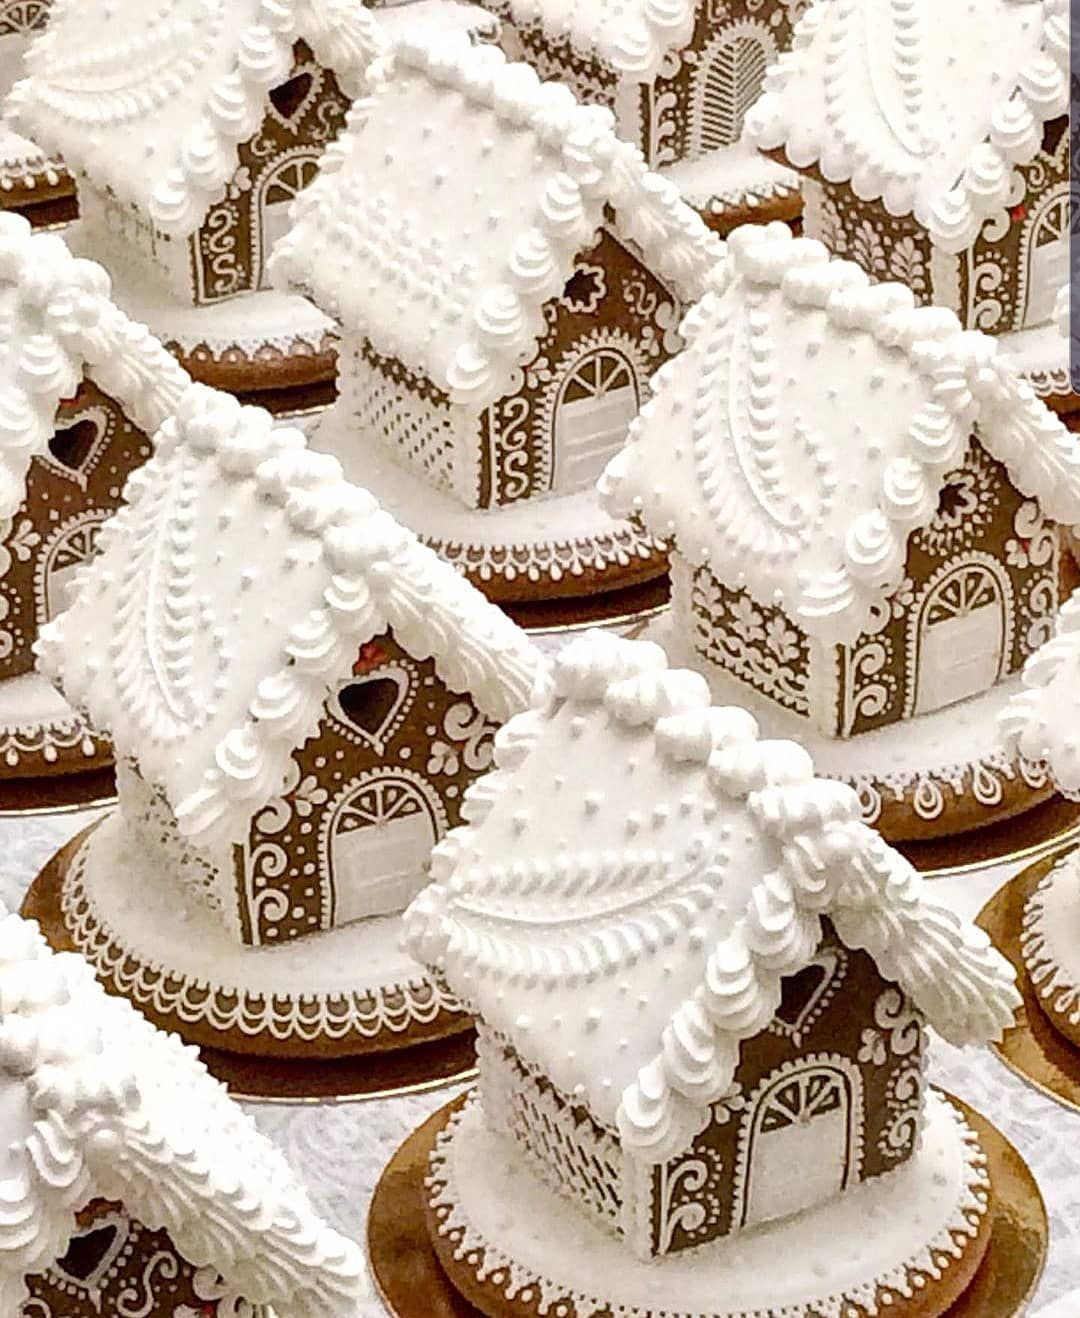 "� CAKES � COOKIES � CUPCAKES � on Instagram: ""Gingerbread houses by @olga.shperling_icing ��� If I could make these amazing houses I would never eat them � And would never allow…"""